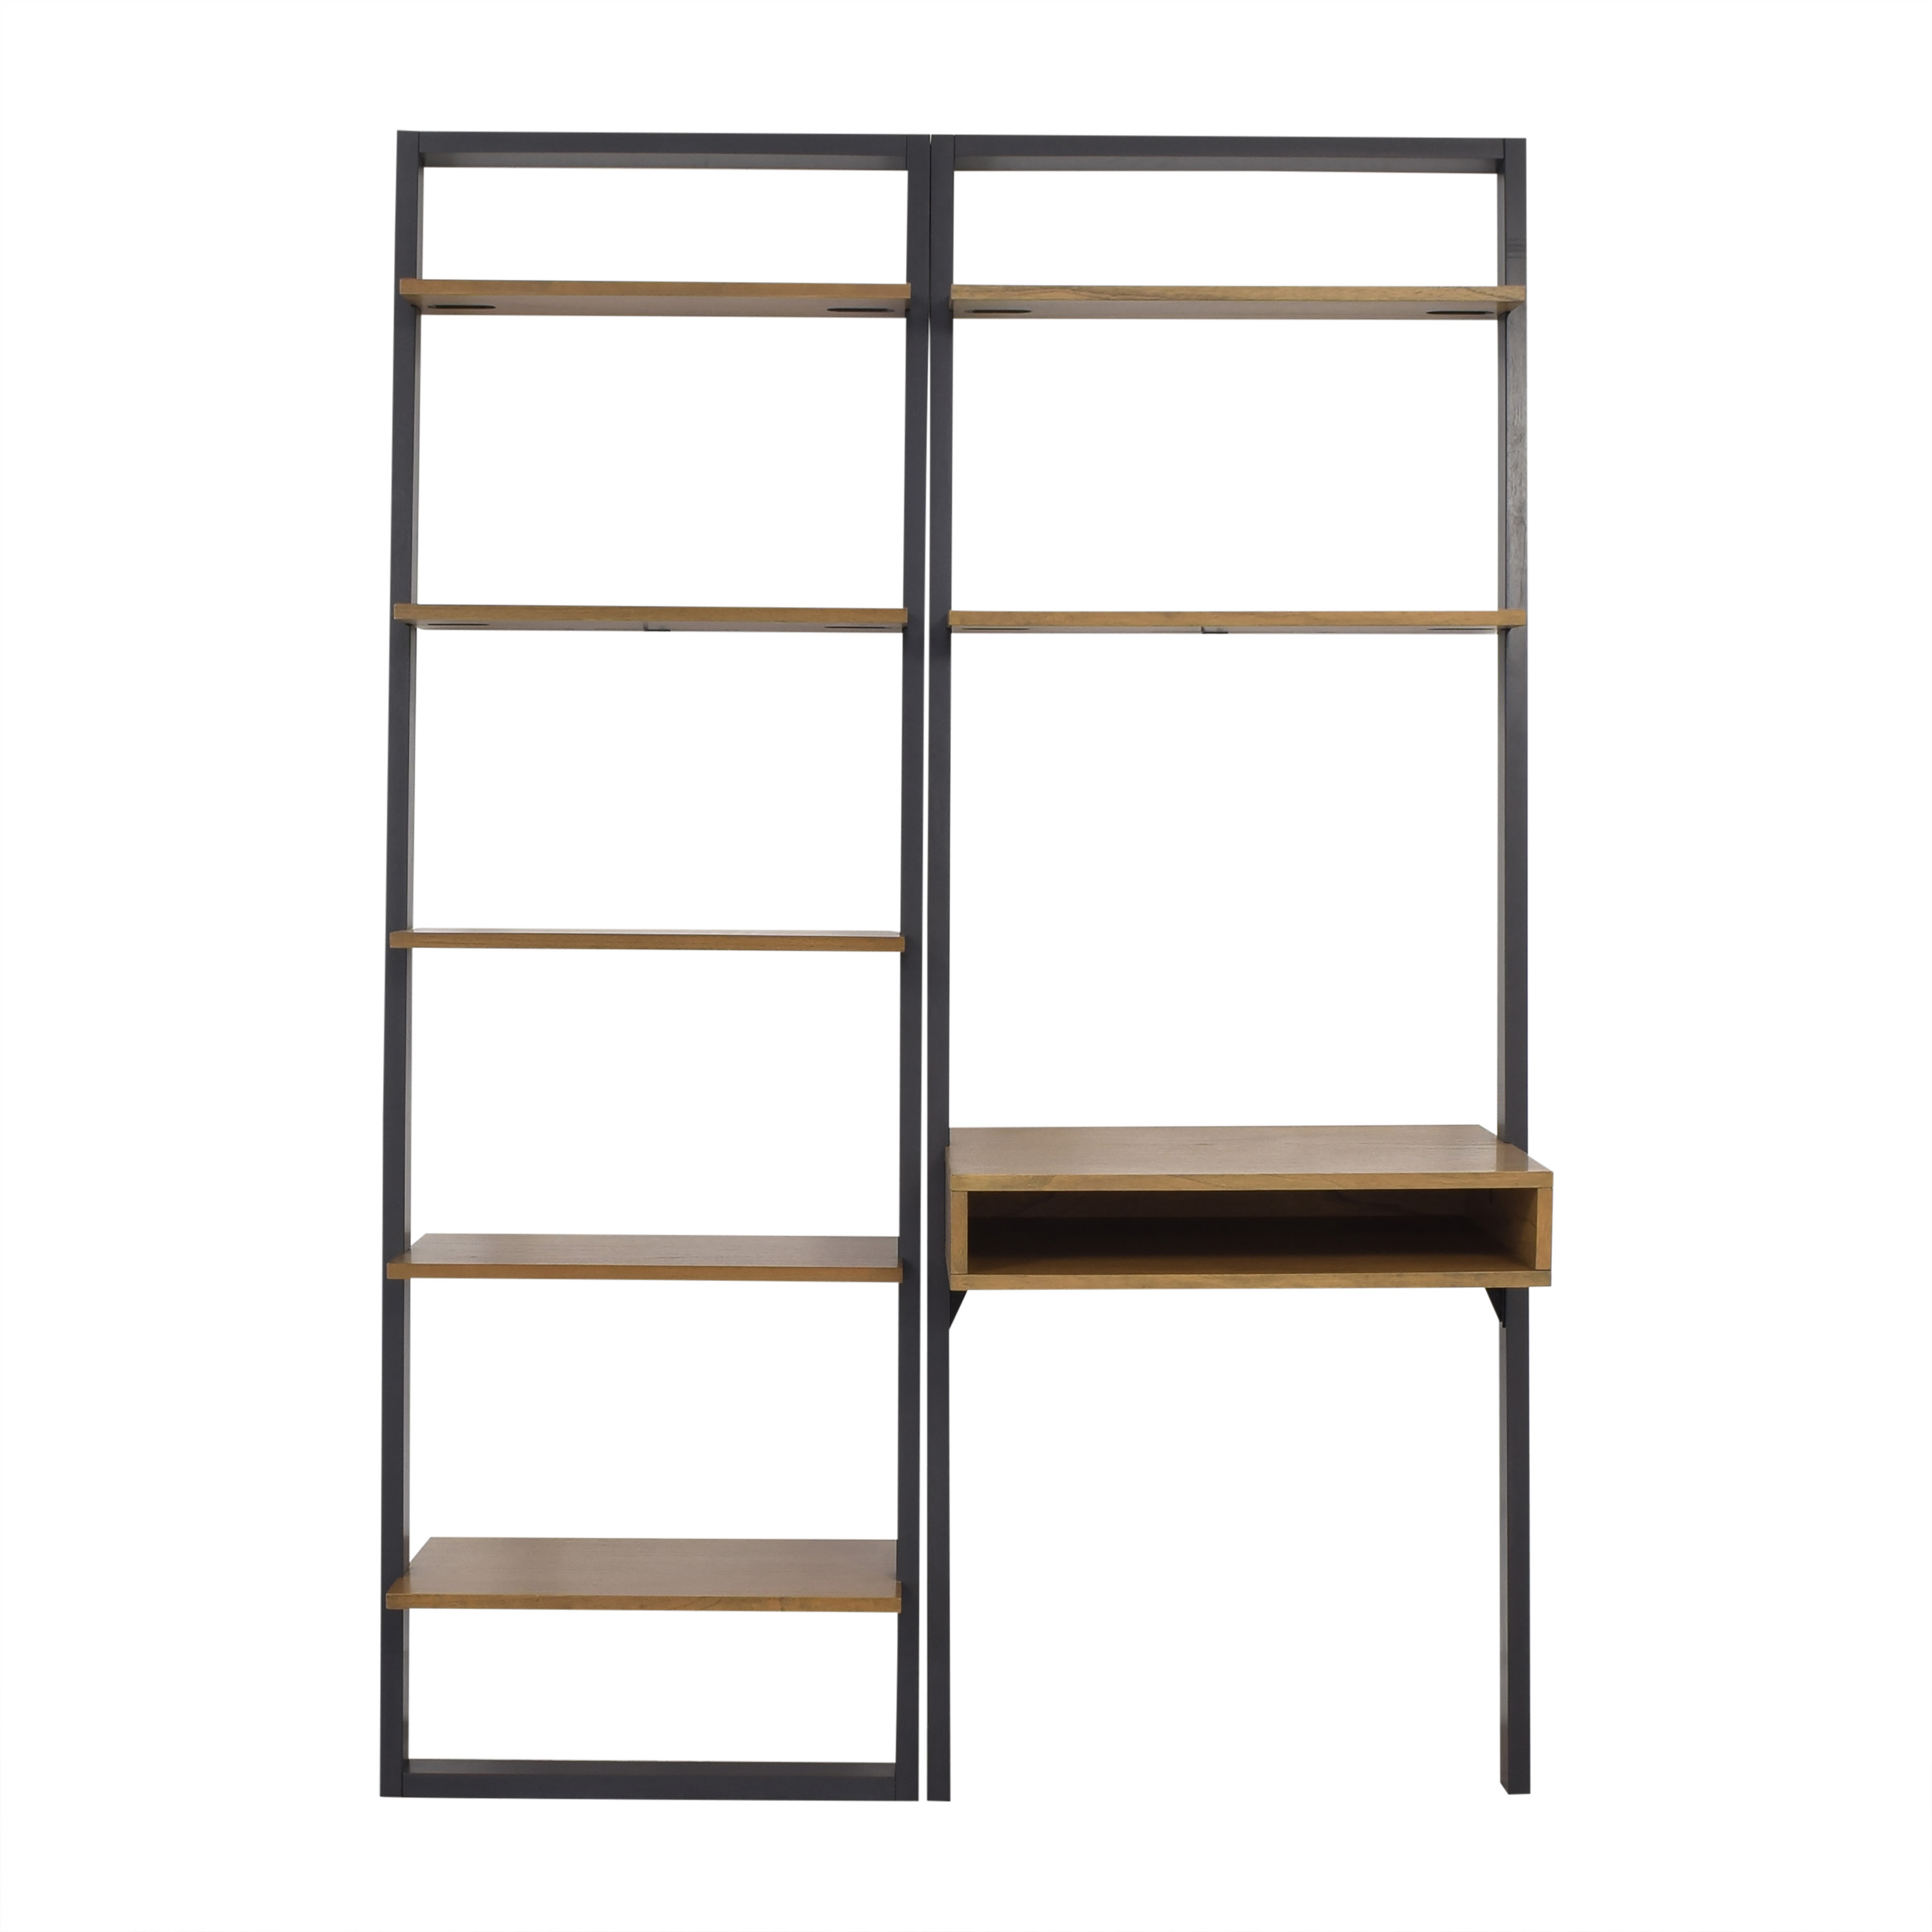 West Elm West Elm Ladder Desk and Shelf pa